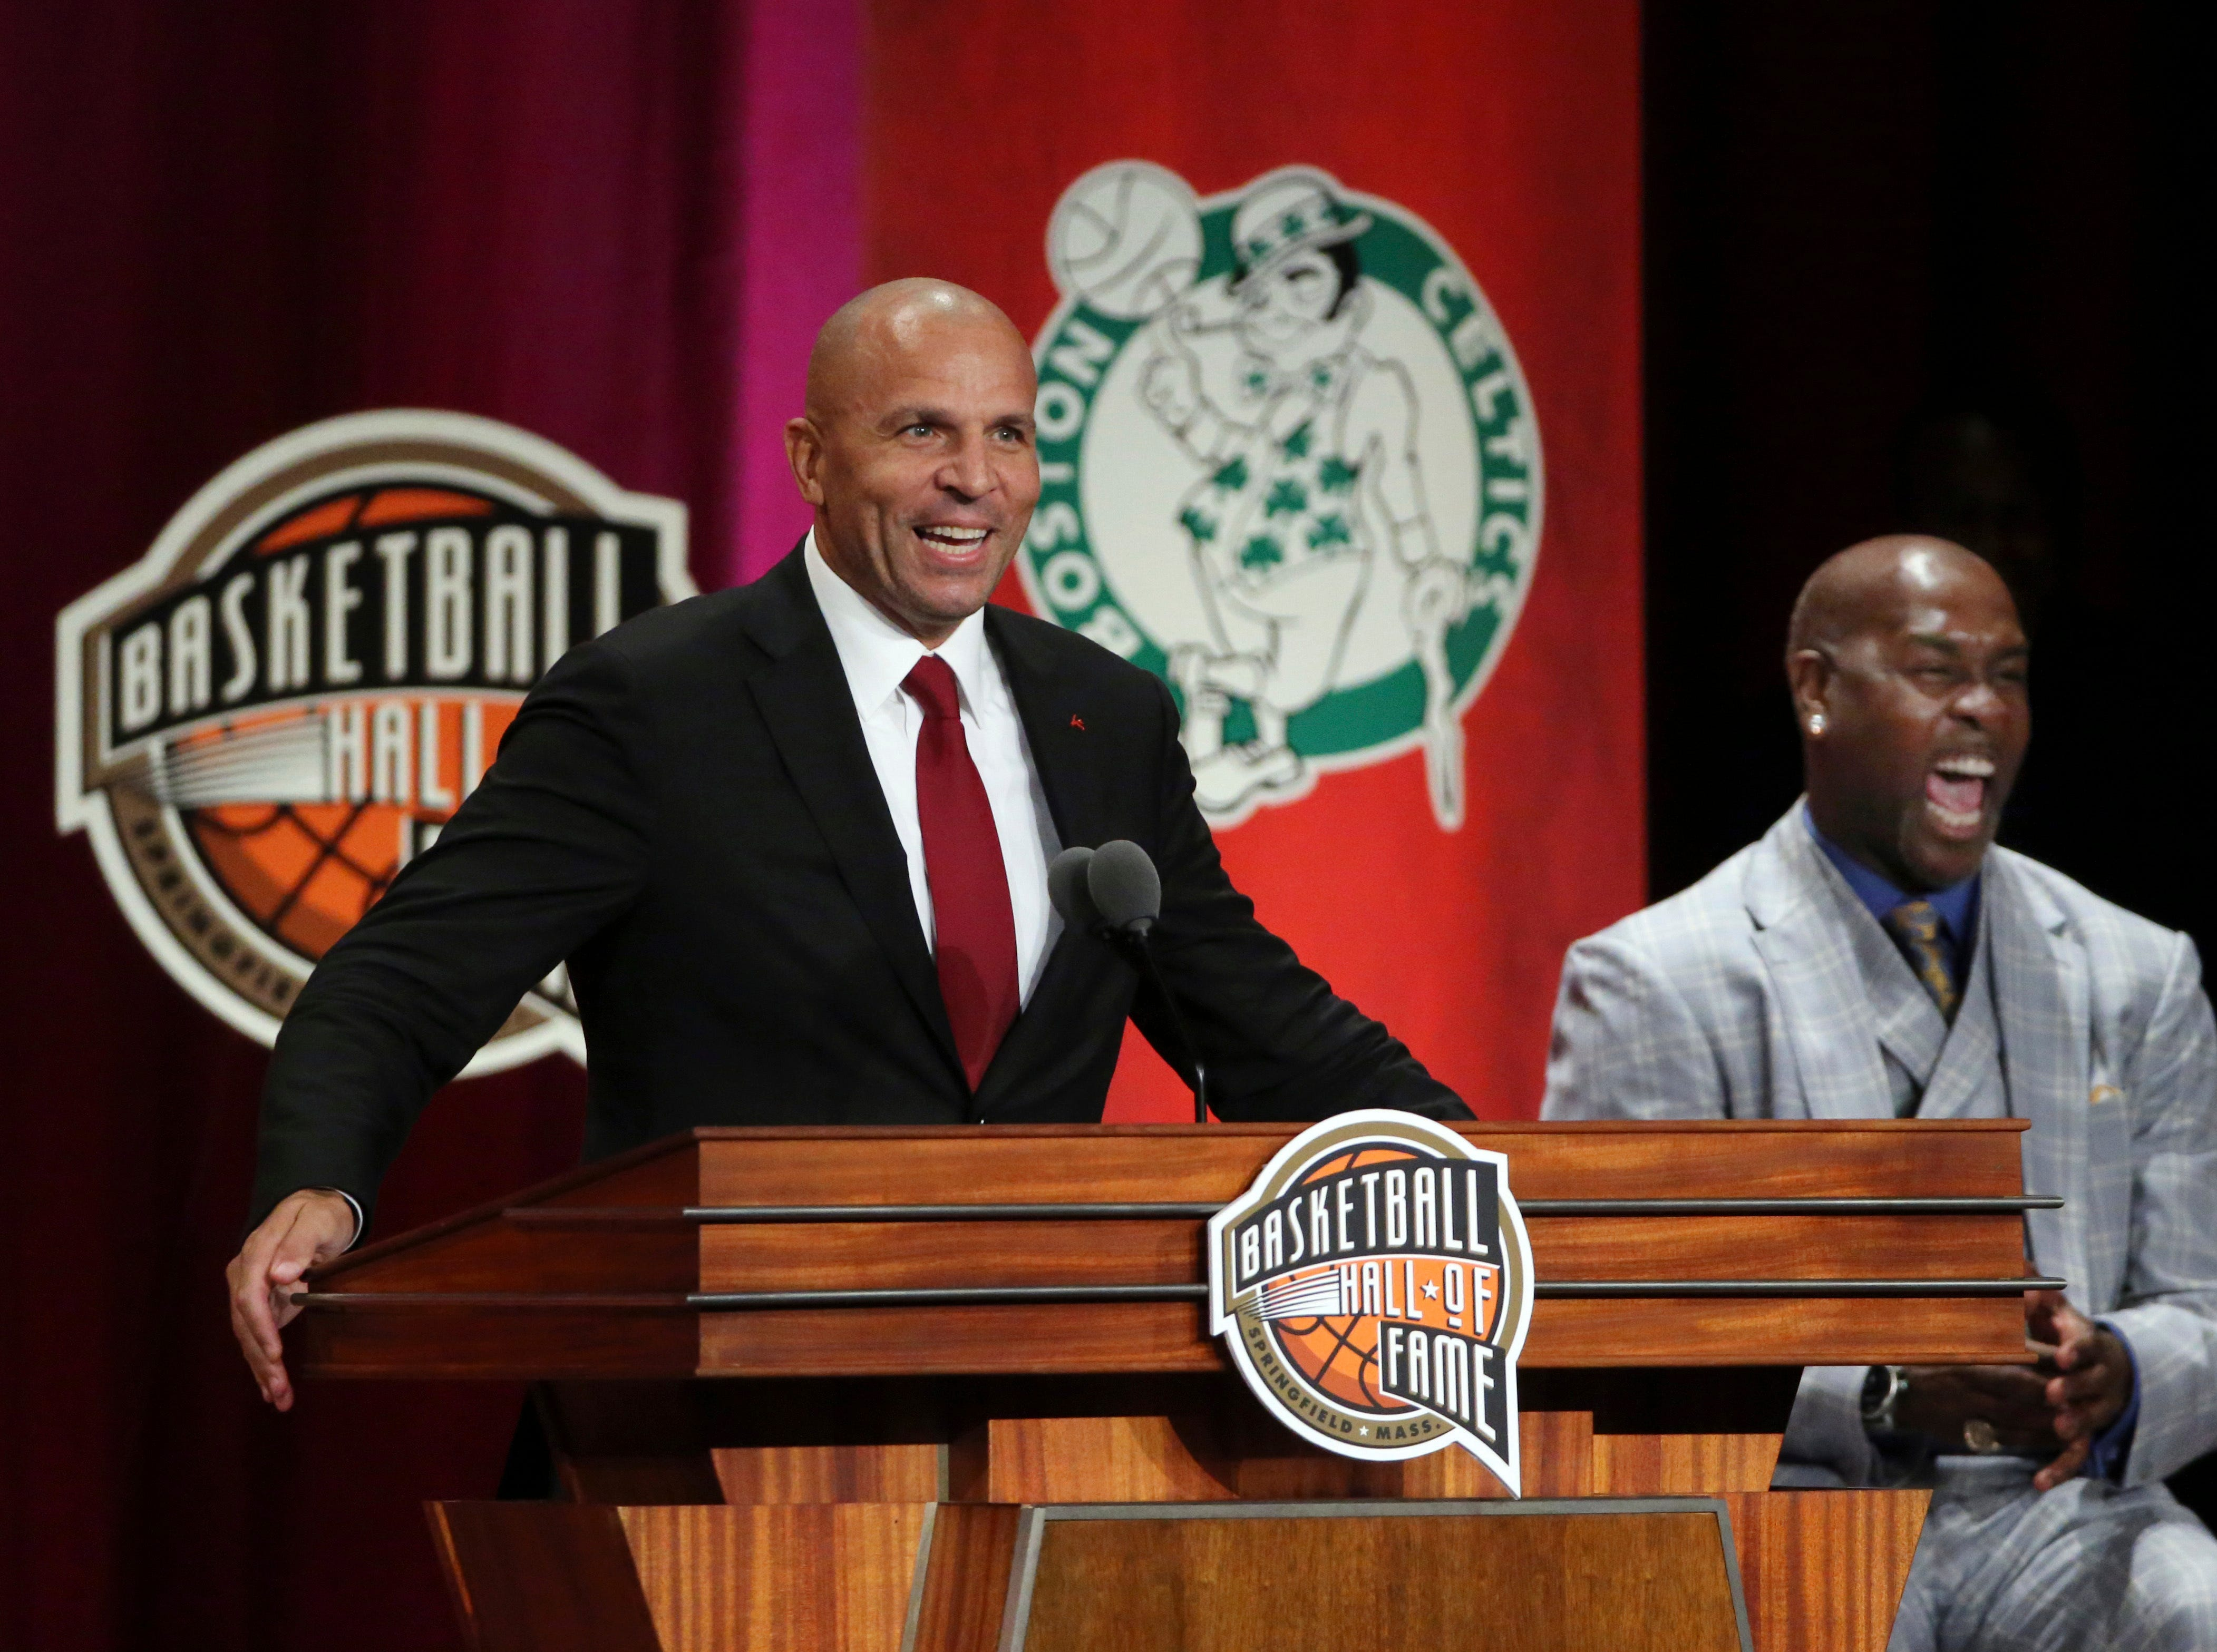 Jason Kidd, left, speaks as presenter Gary Payton, right, laughs during induction ceremonies into the Basketball Hall of Fame.